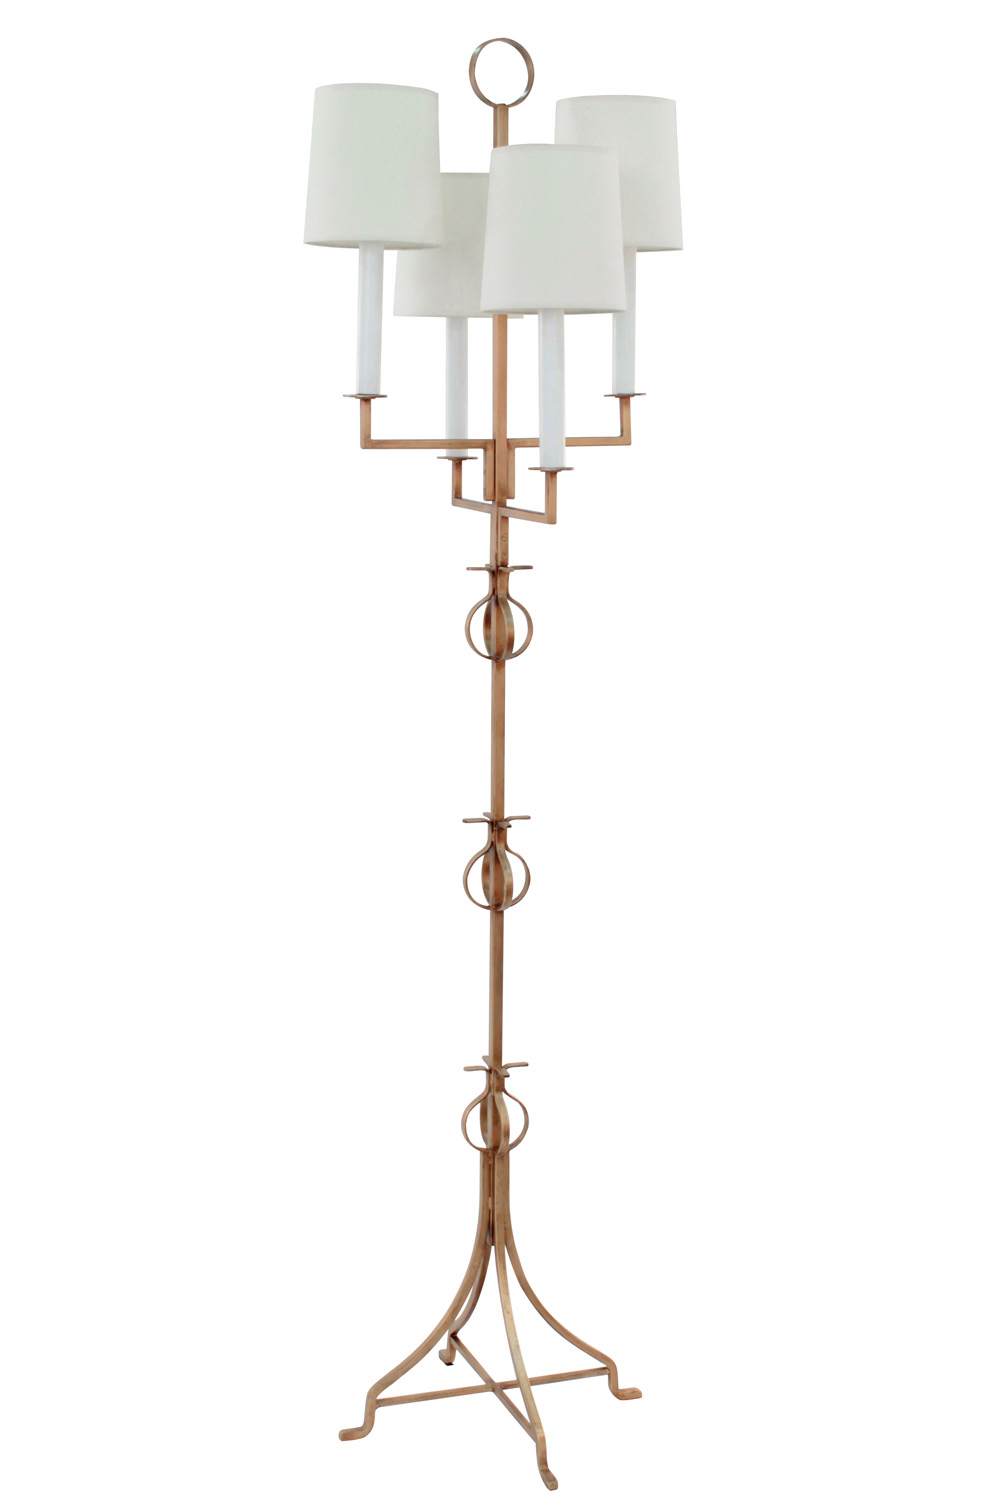 Parzinger 85 4light bronze floorlamp65 hires.jpg